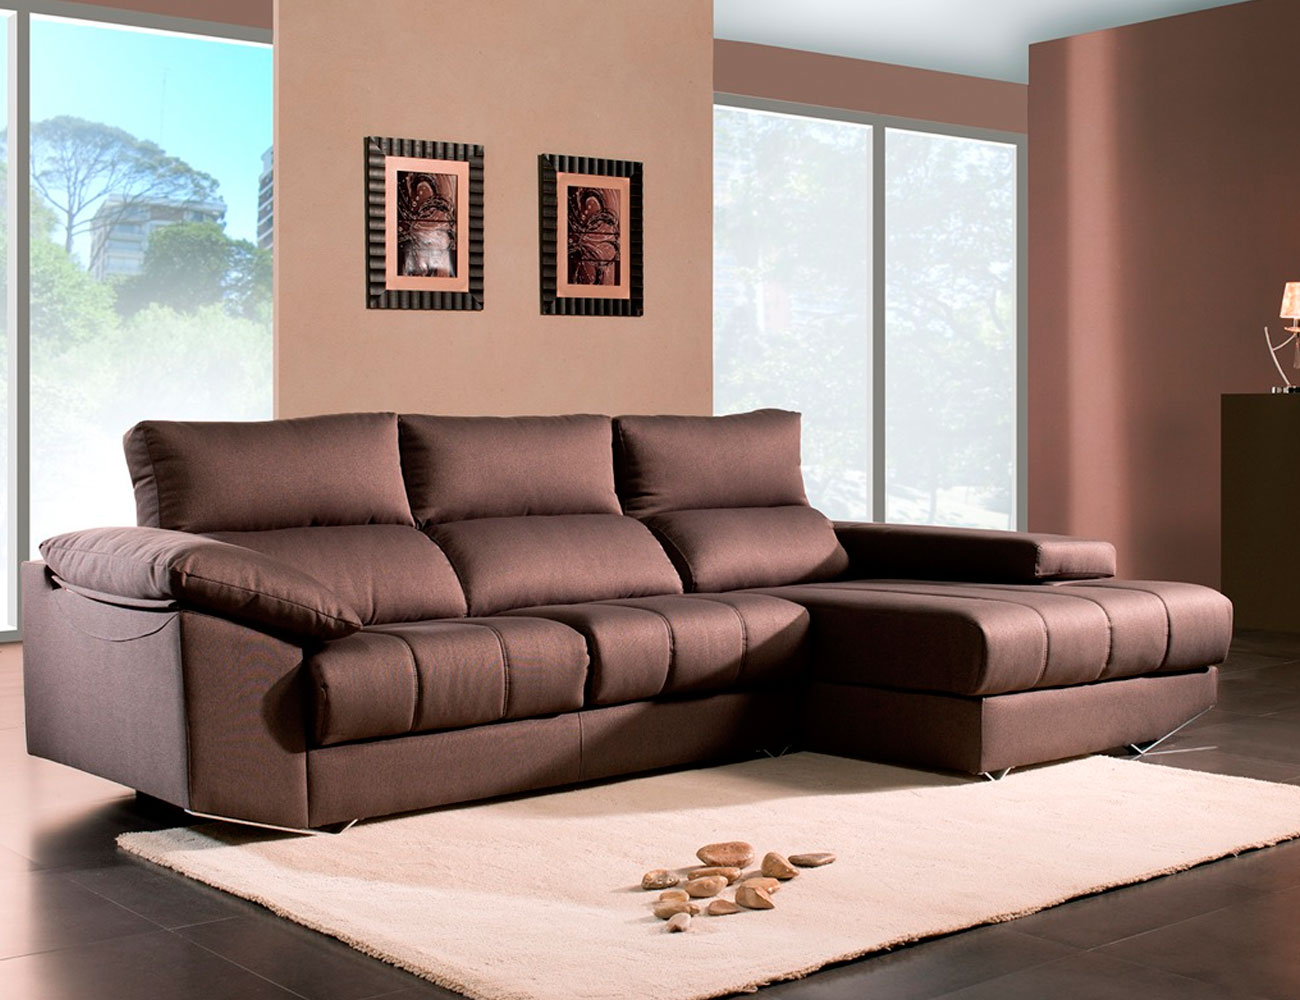 Sofa chaiselongue moderno brazo mecanico20